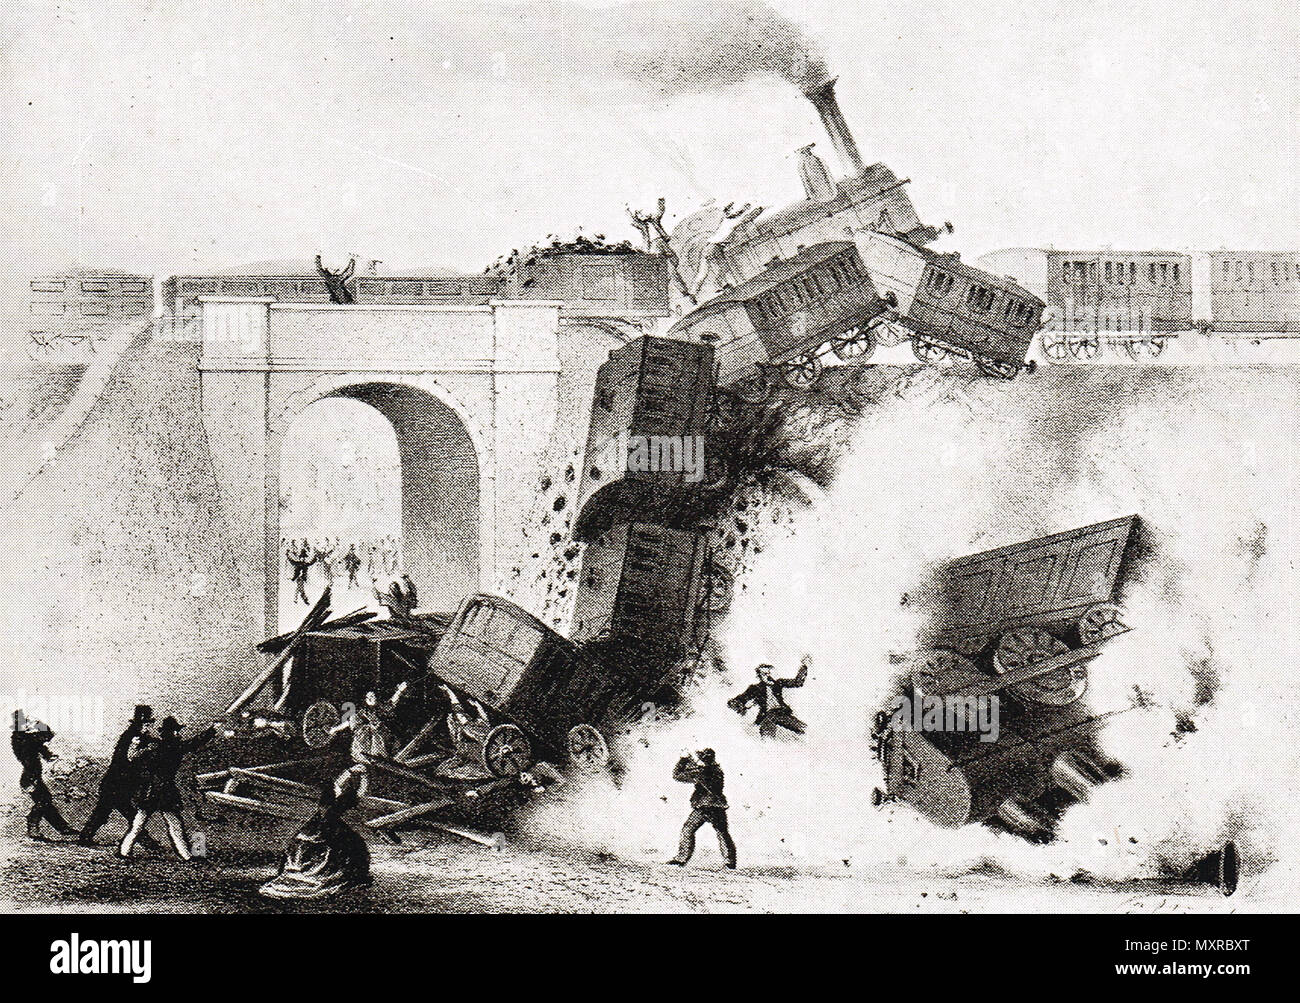 Kentish Town rail accident of 2 September 1861, - Stock Image